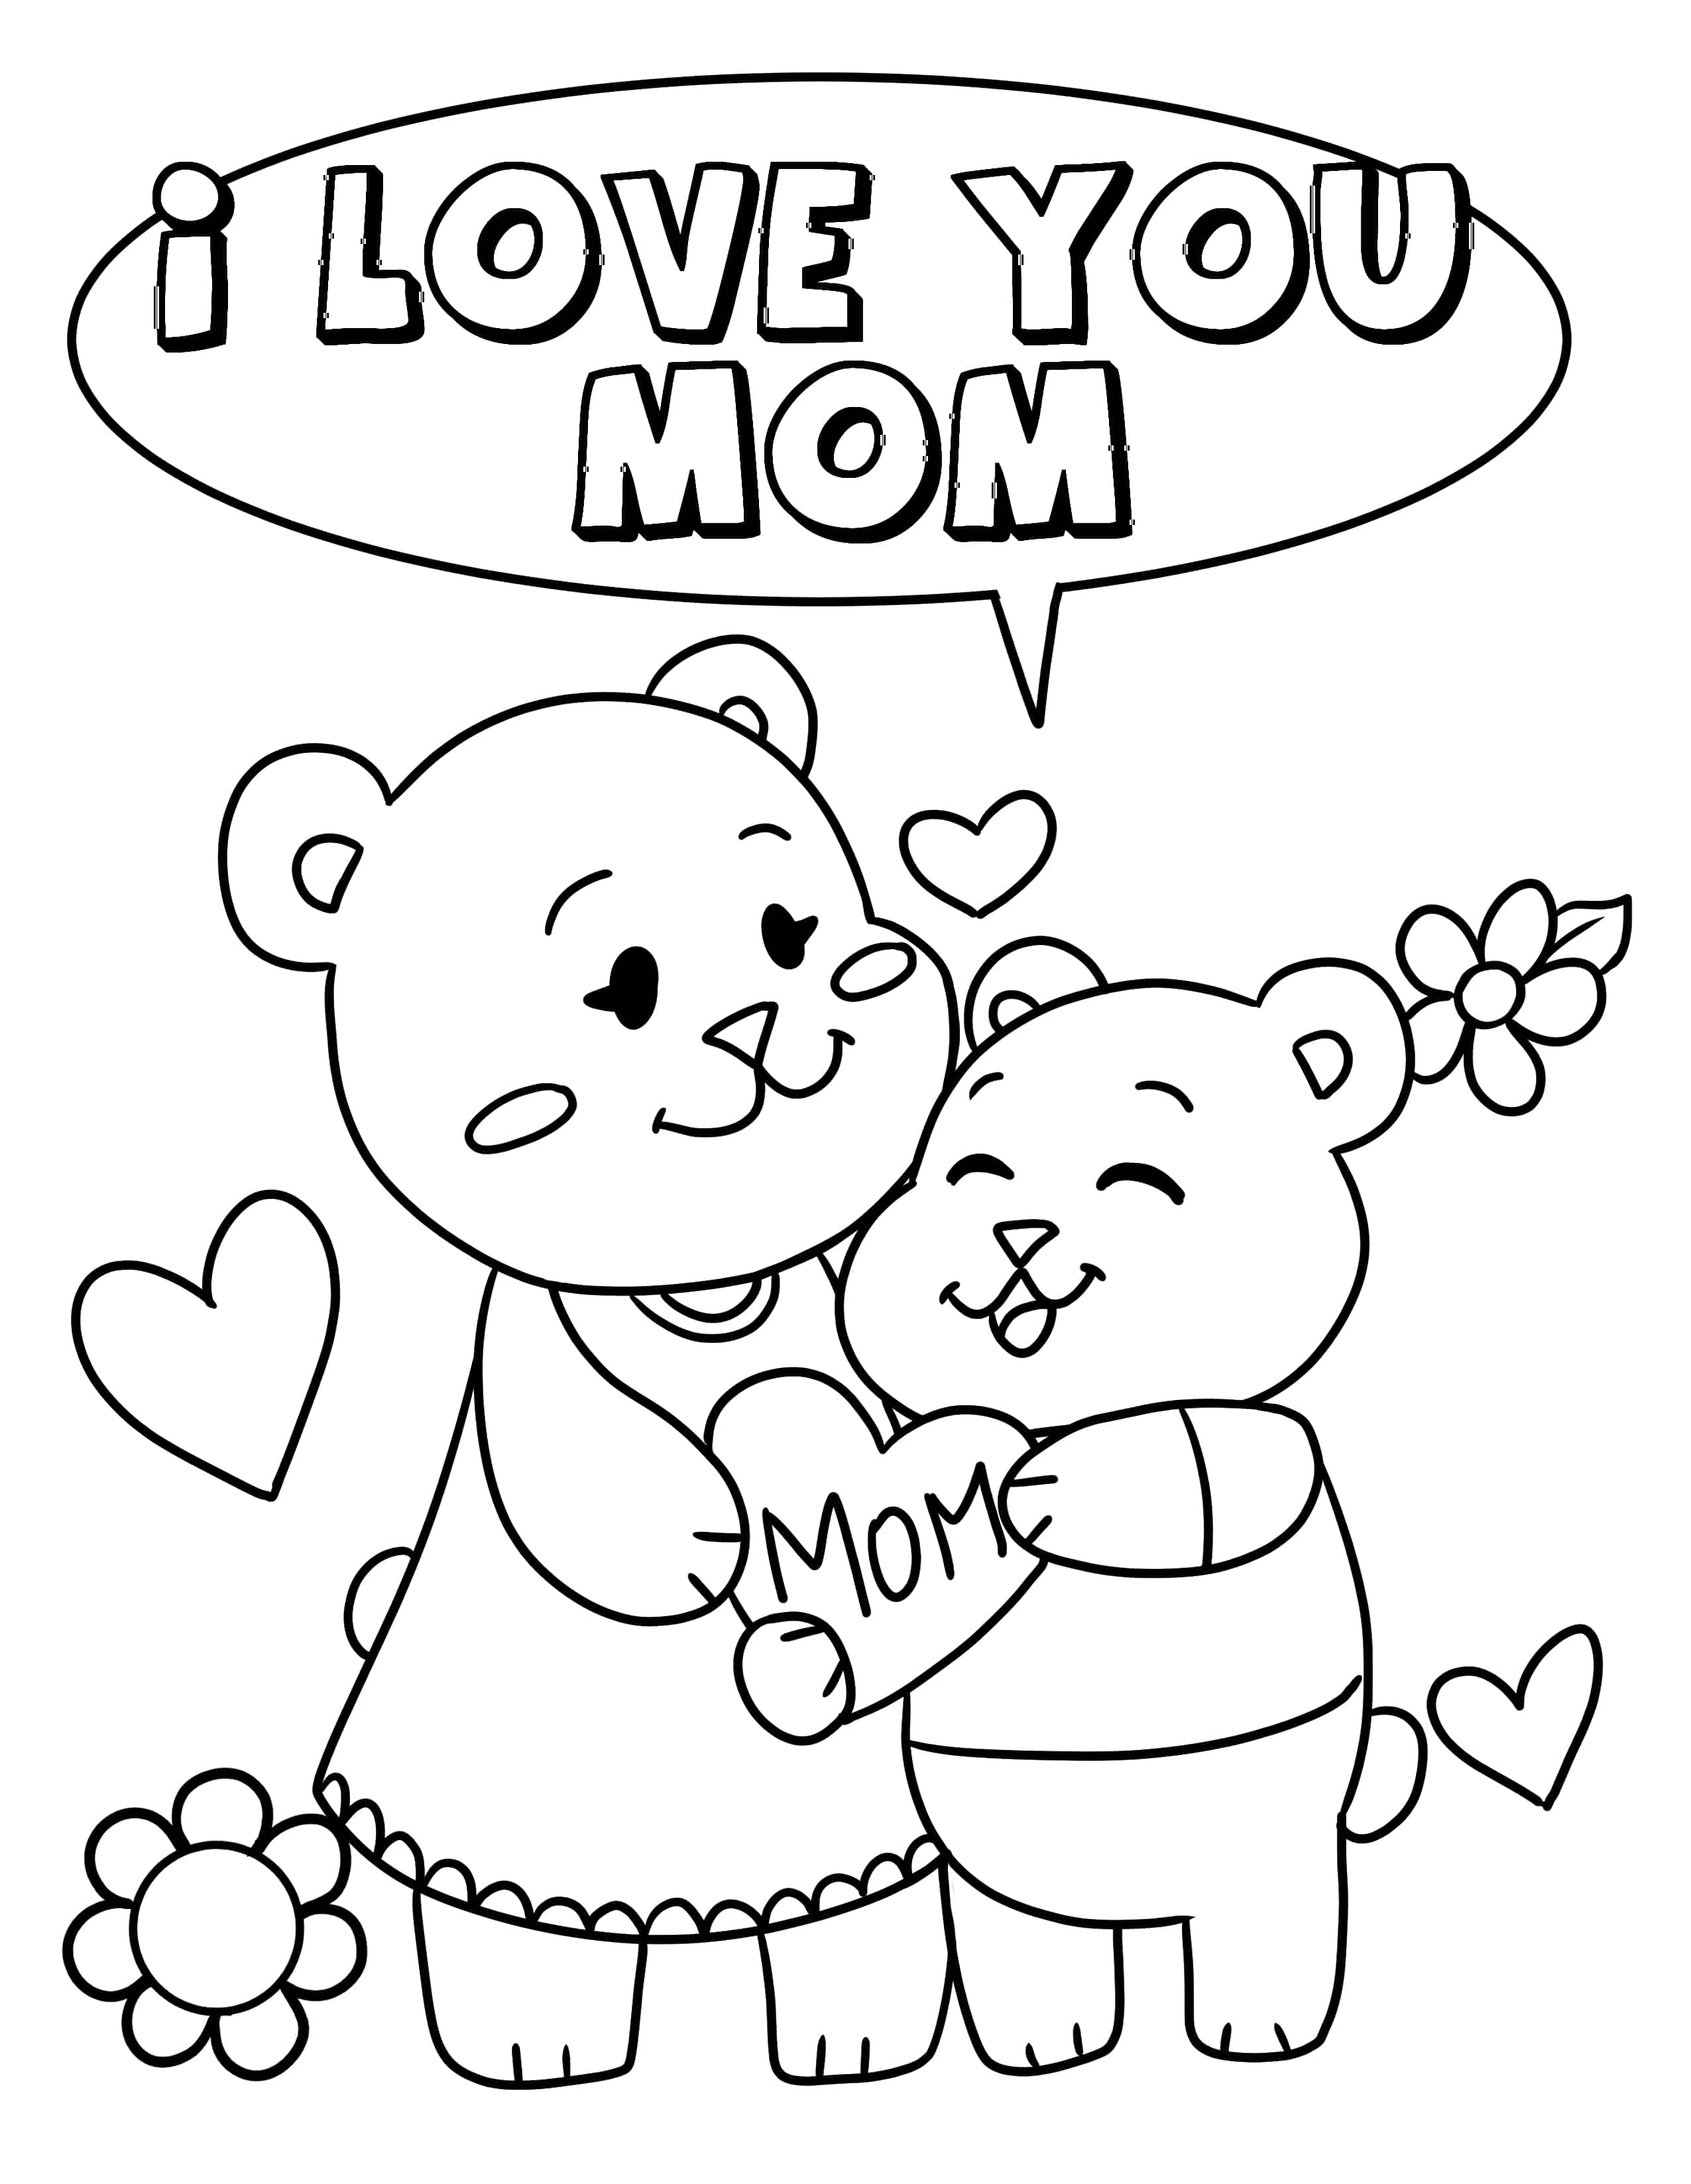 Tell mom just how much you love her with this free printable Happy Mother's Day coloring pages featuring totally huggable teddy bears.